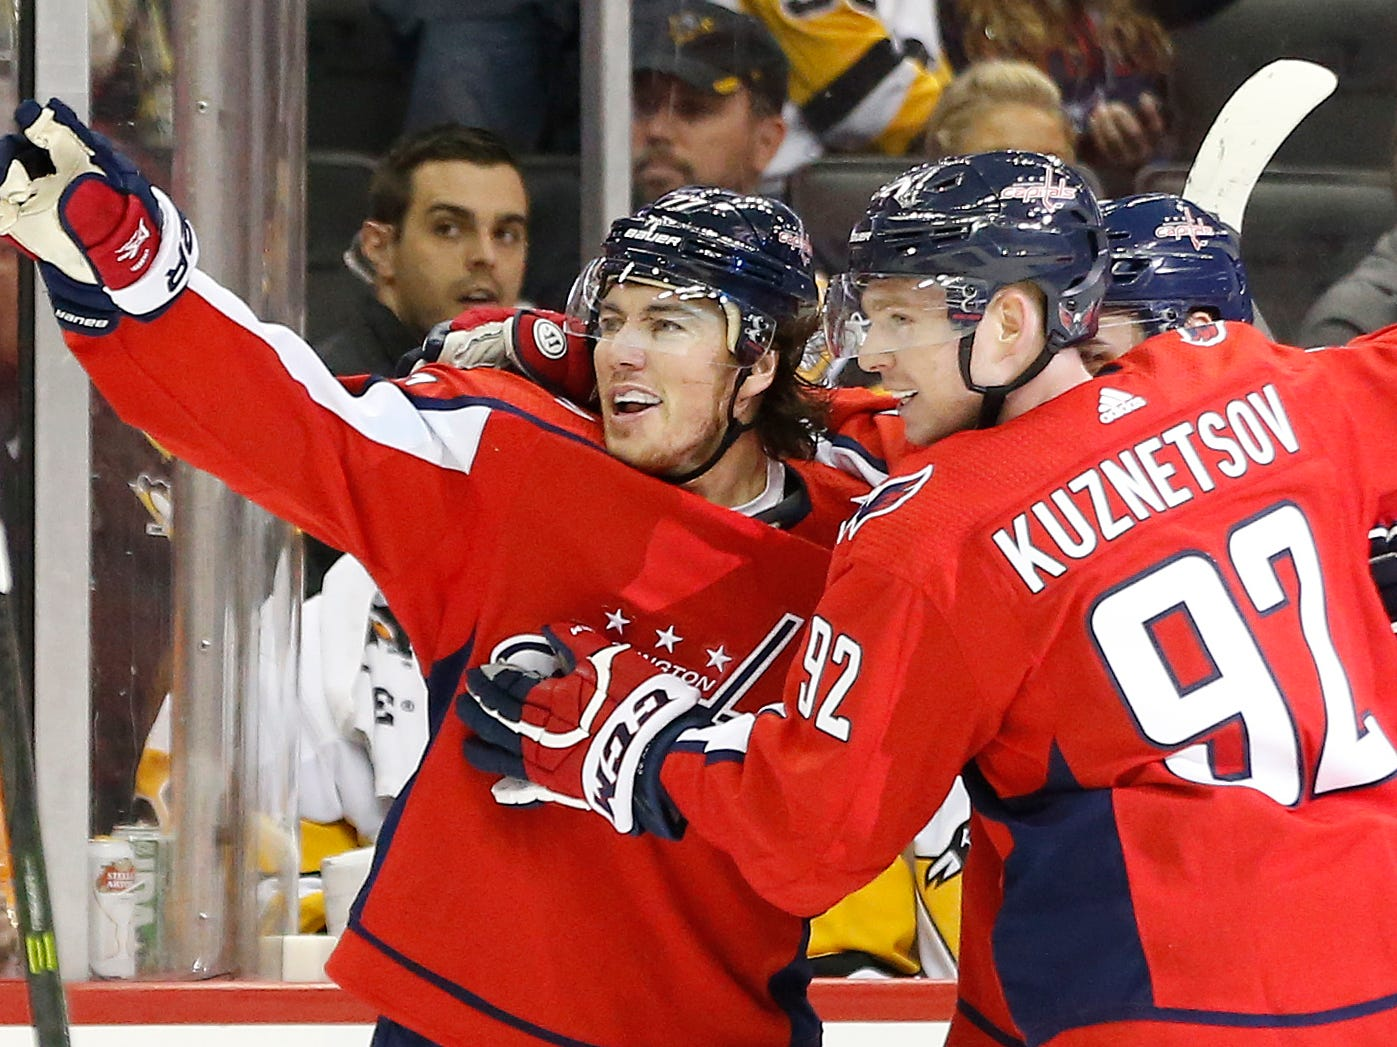 Nov. 7: Washington Capitals winger T.J. Oshie, left, celebrates with teammates after scoring the winning goal against the Pittsburgh Penguins.